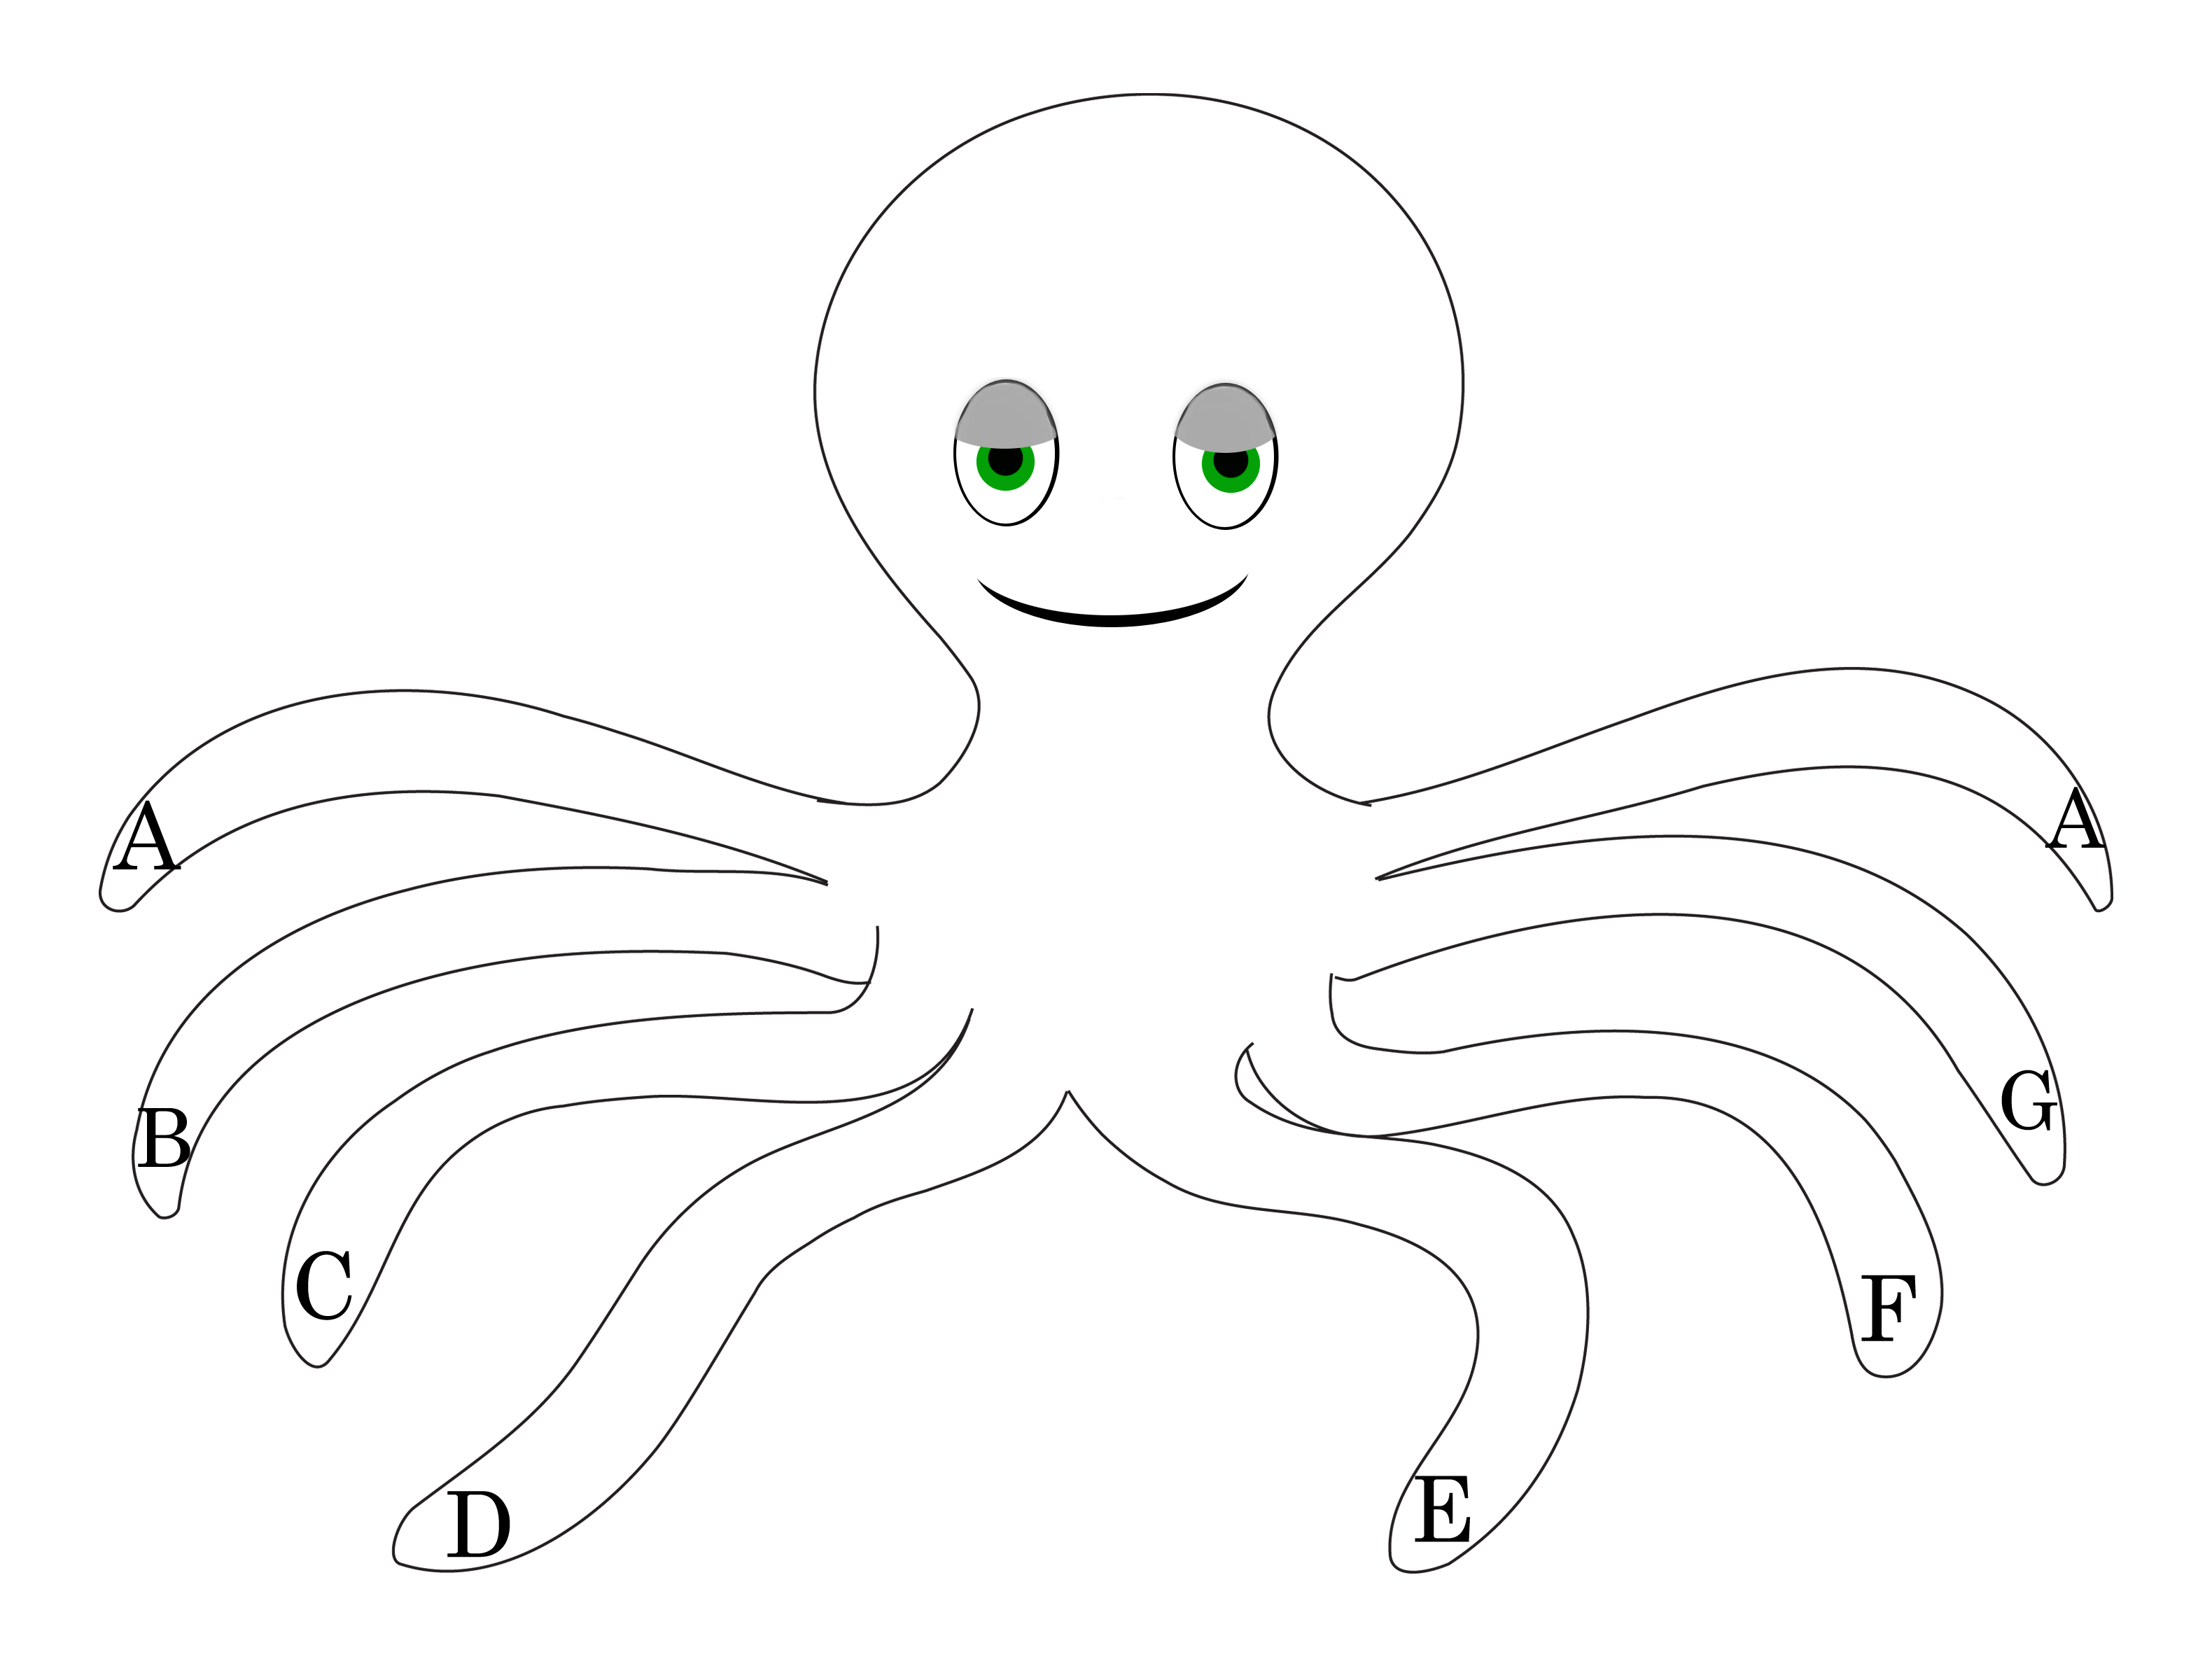 octopus coloring pages and activities - photo#19